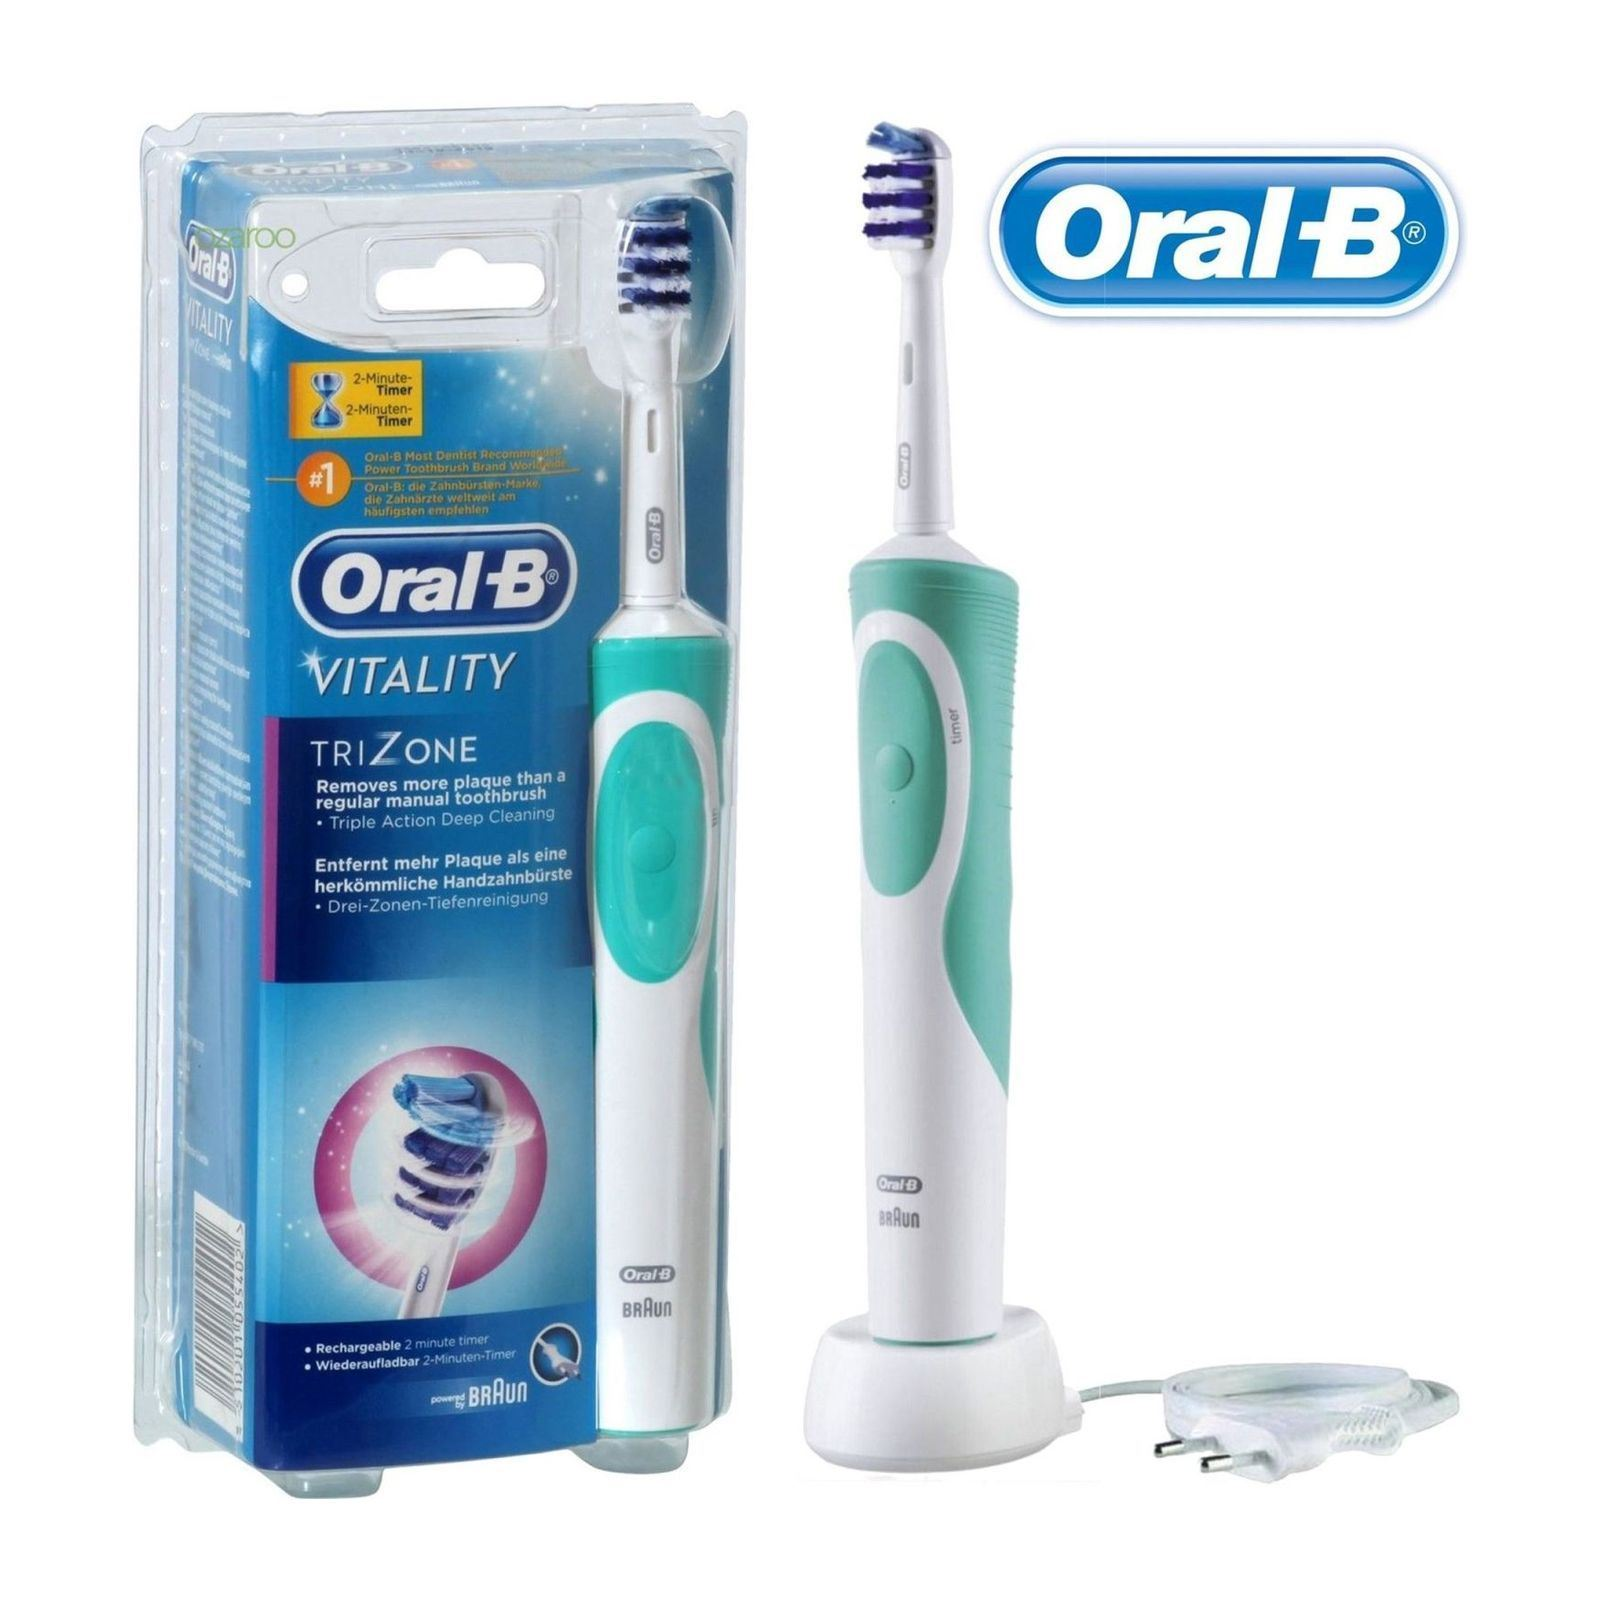 oral b pack vitality trizone 1 spazzolino elettrico 12 ricariche 1 dentifricio brandalley. Black Bedroom Furniture Sets. Home Design Ideas